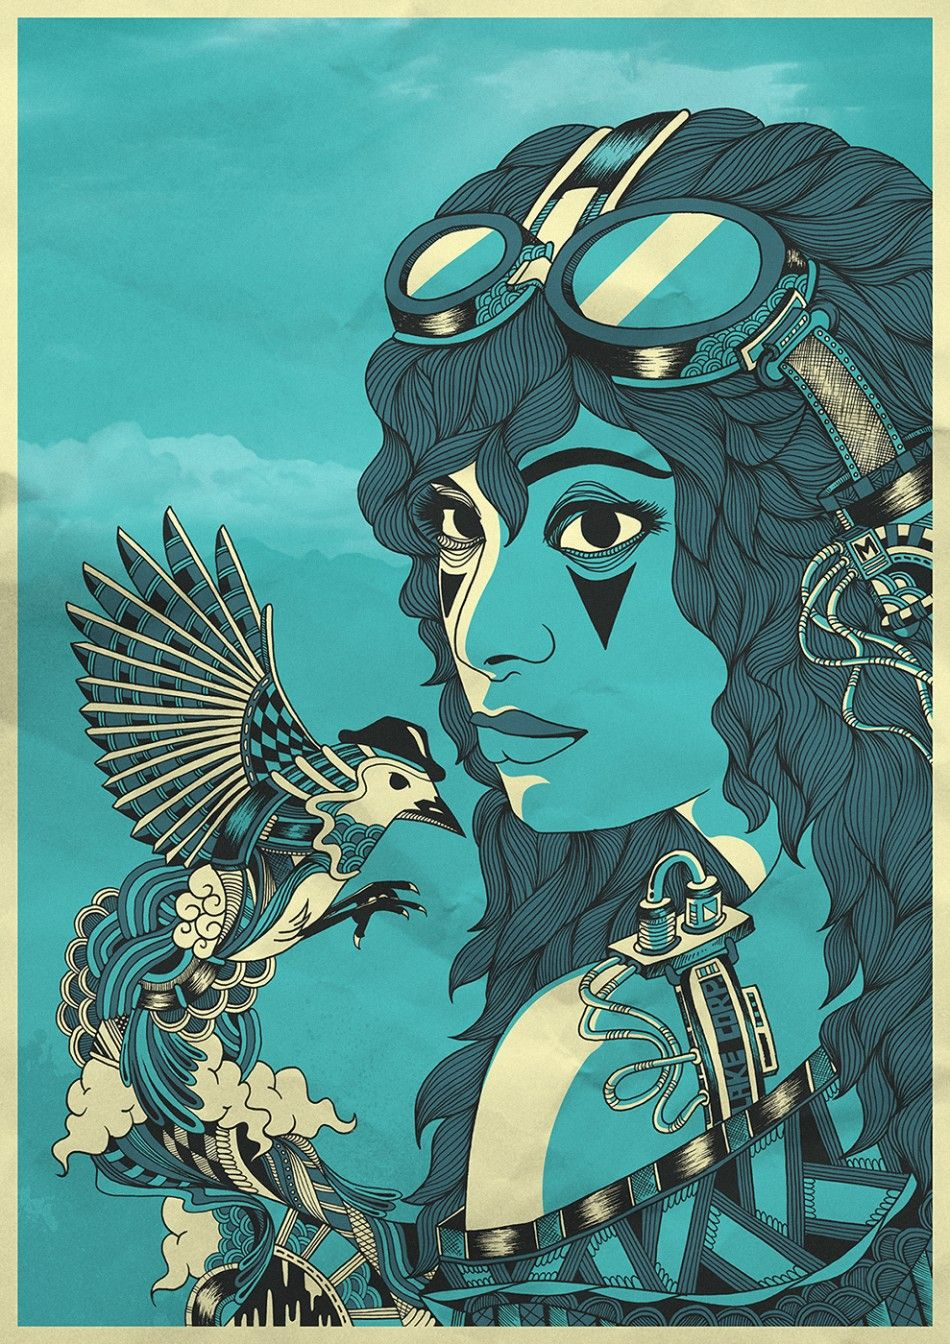 Steampunk goddess by paulo correa advertising from